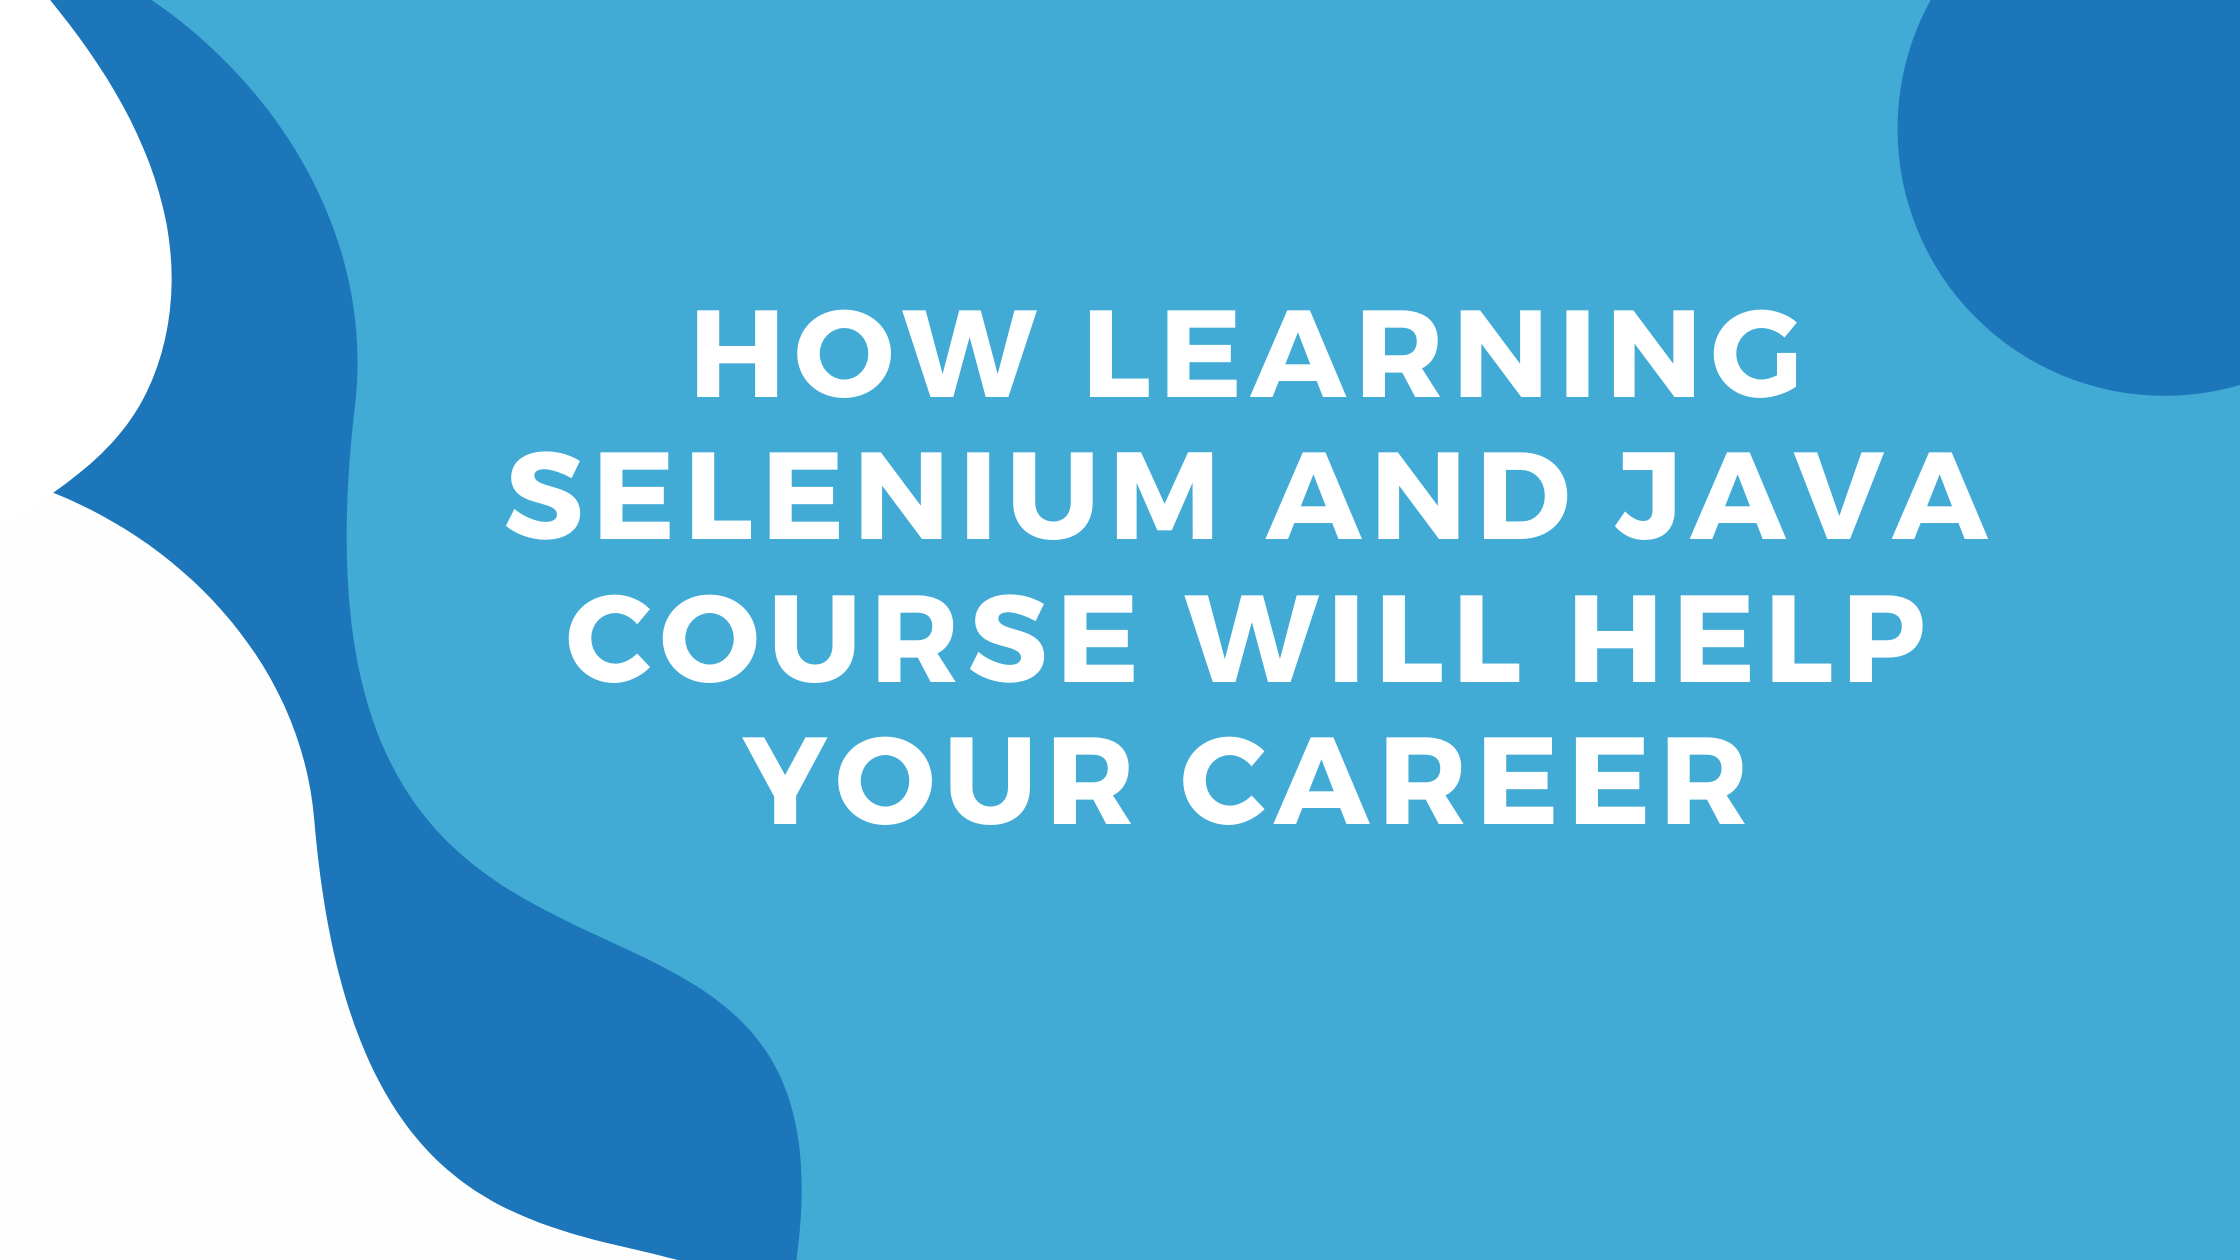 How learning selenium and java course will help your career